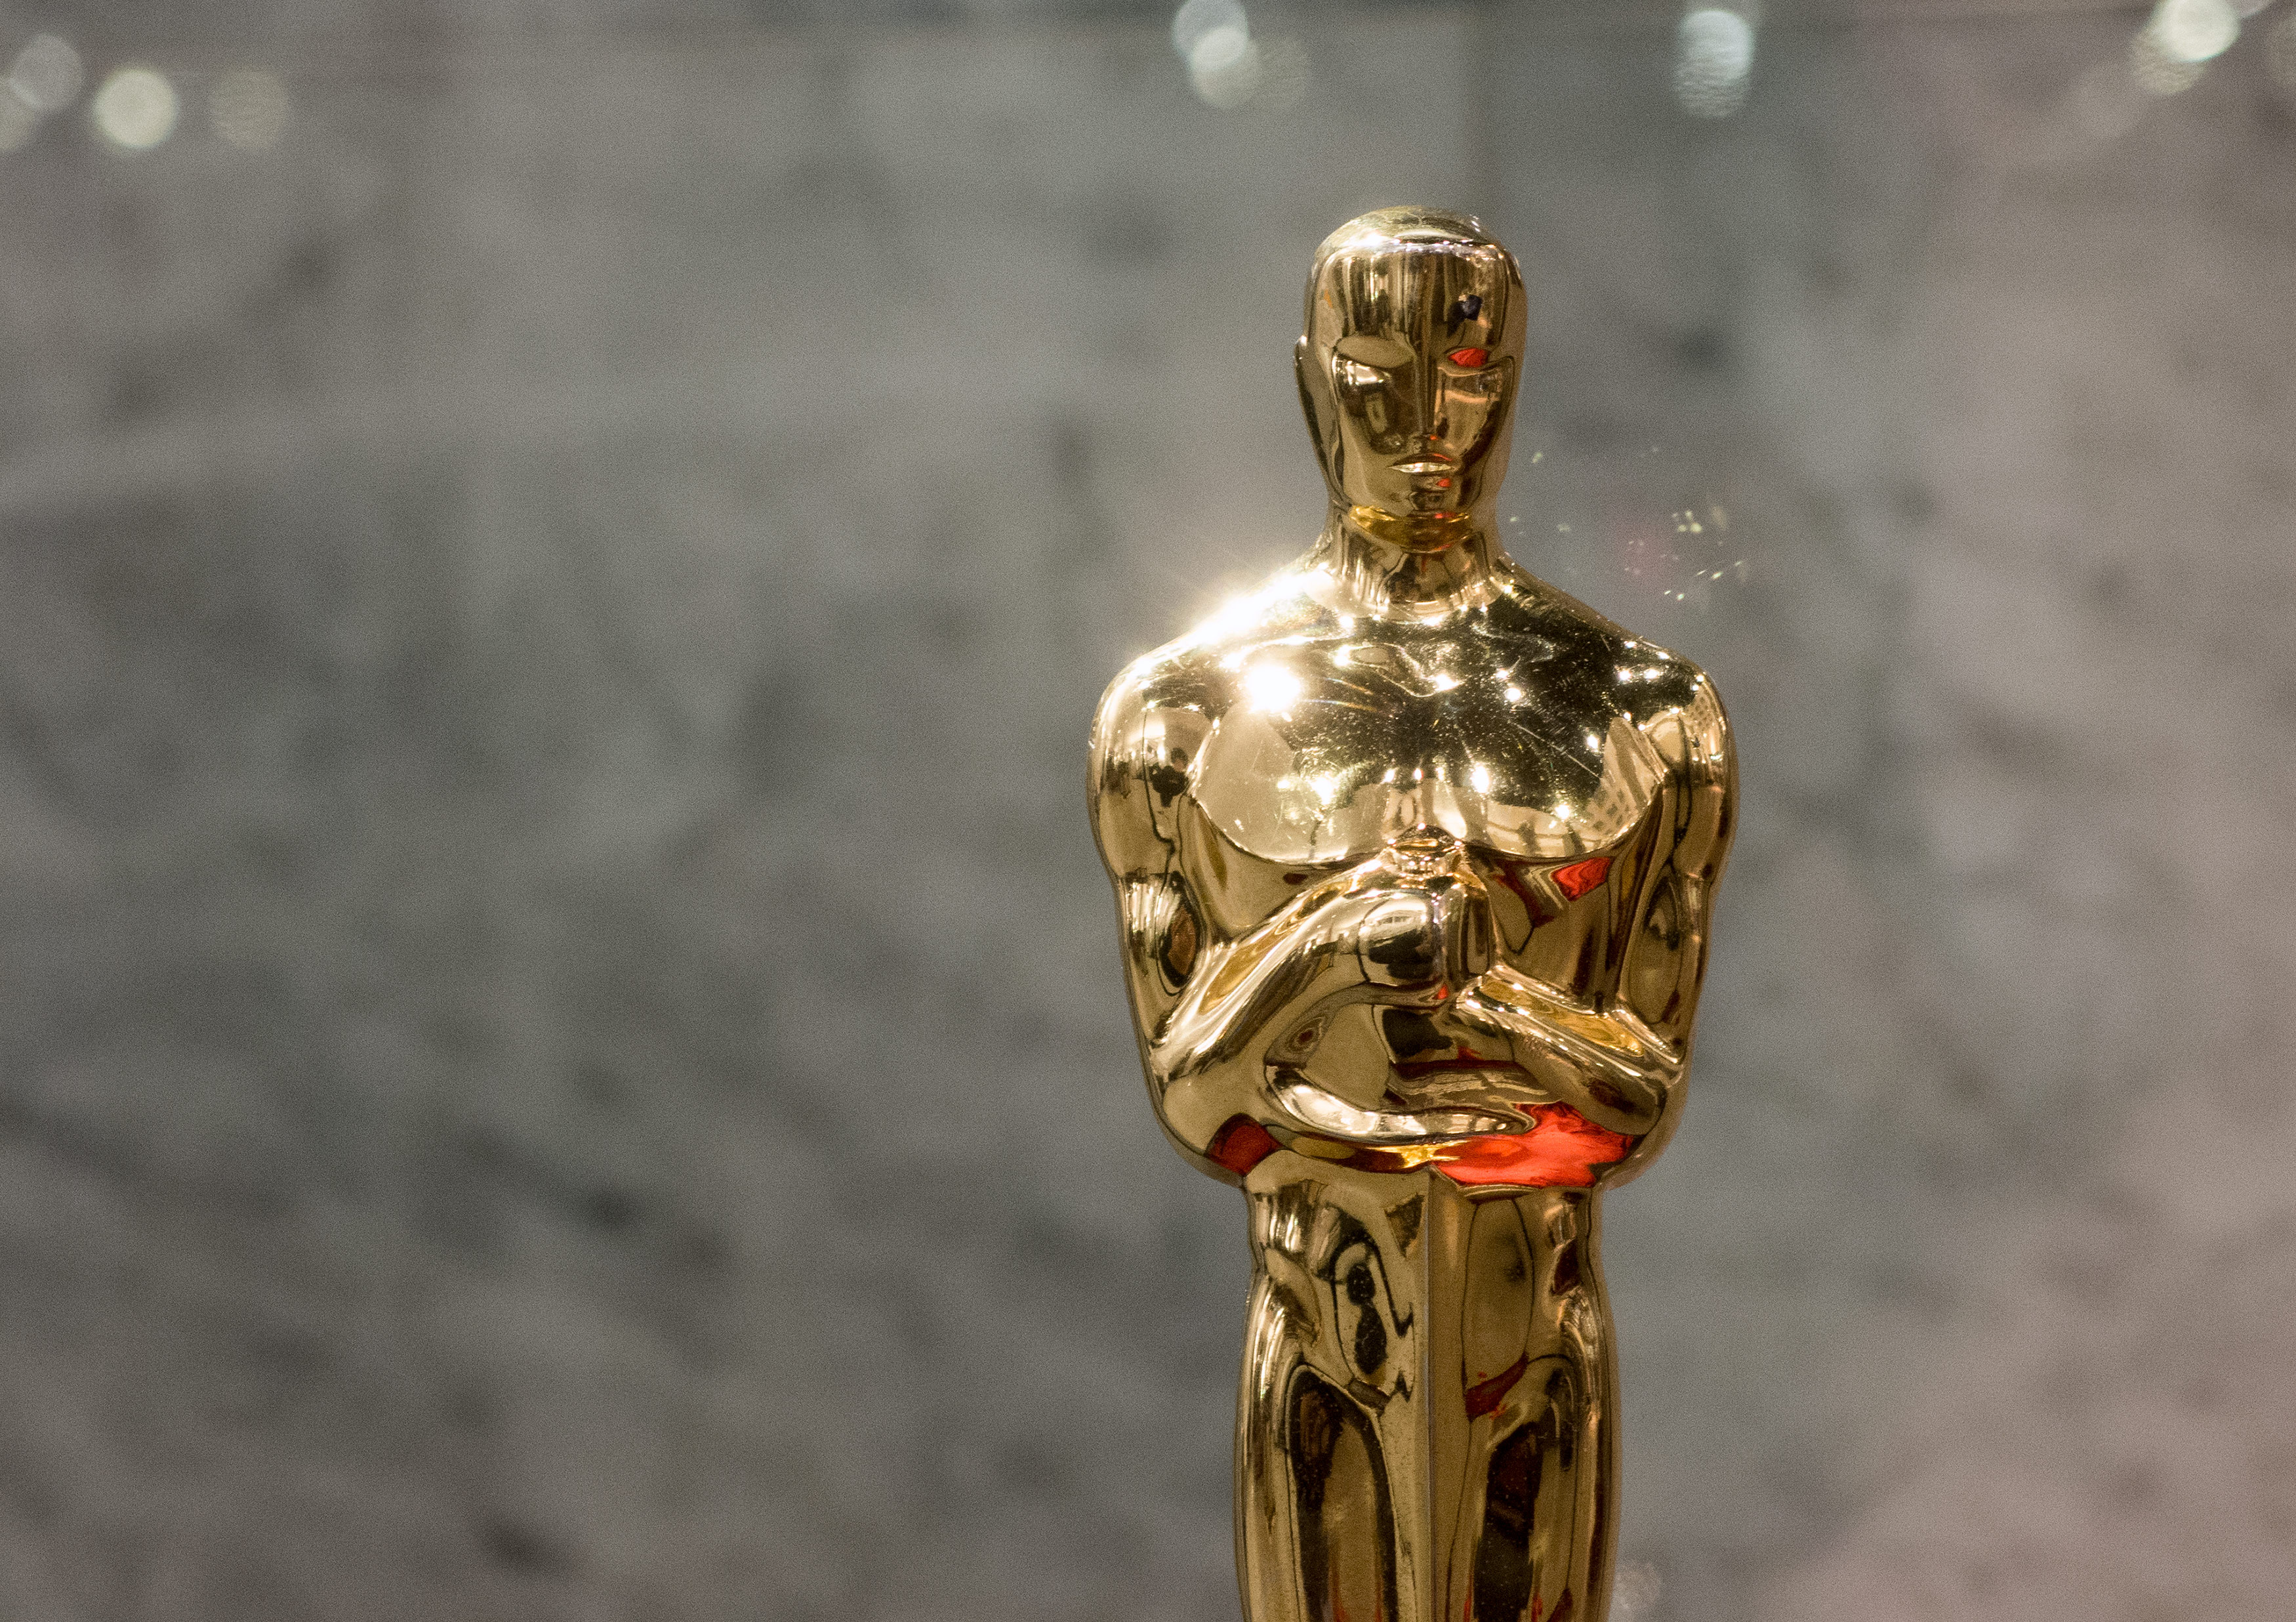 The 92nd Academy Awards will take place on February 9